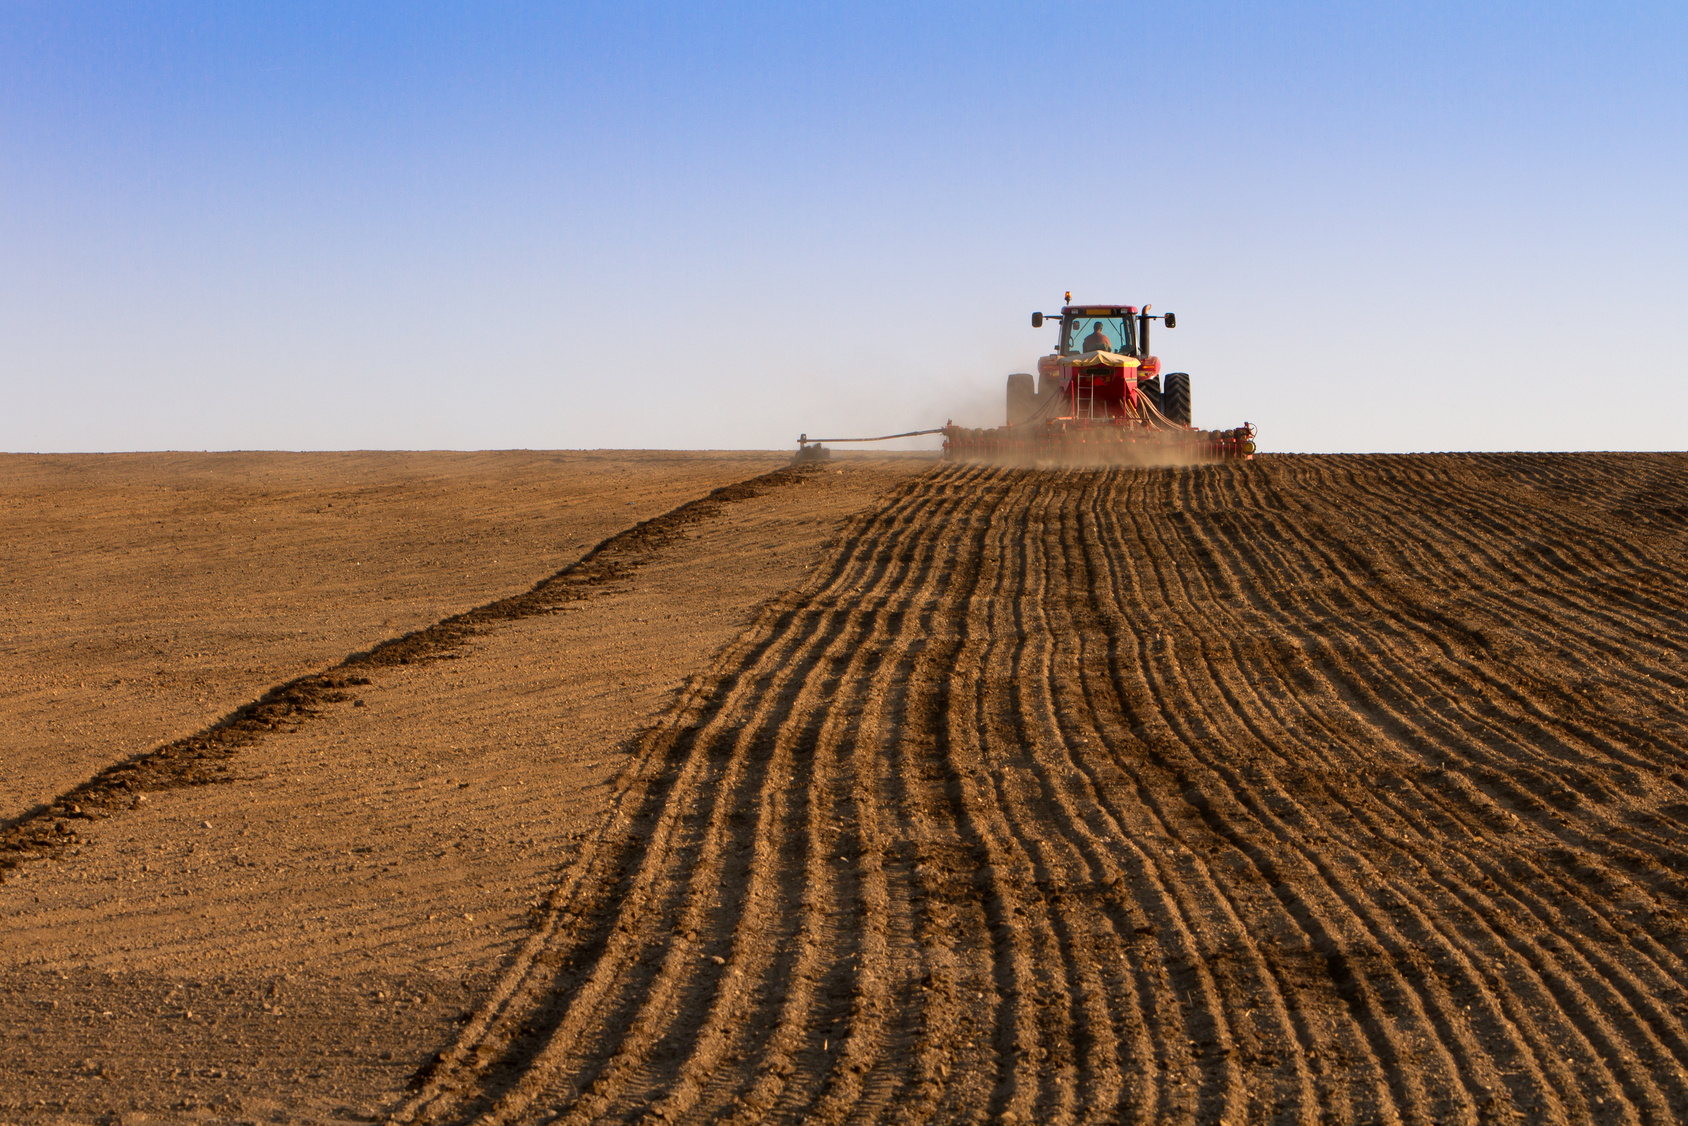 Dirt field with a tractor plowing it